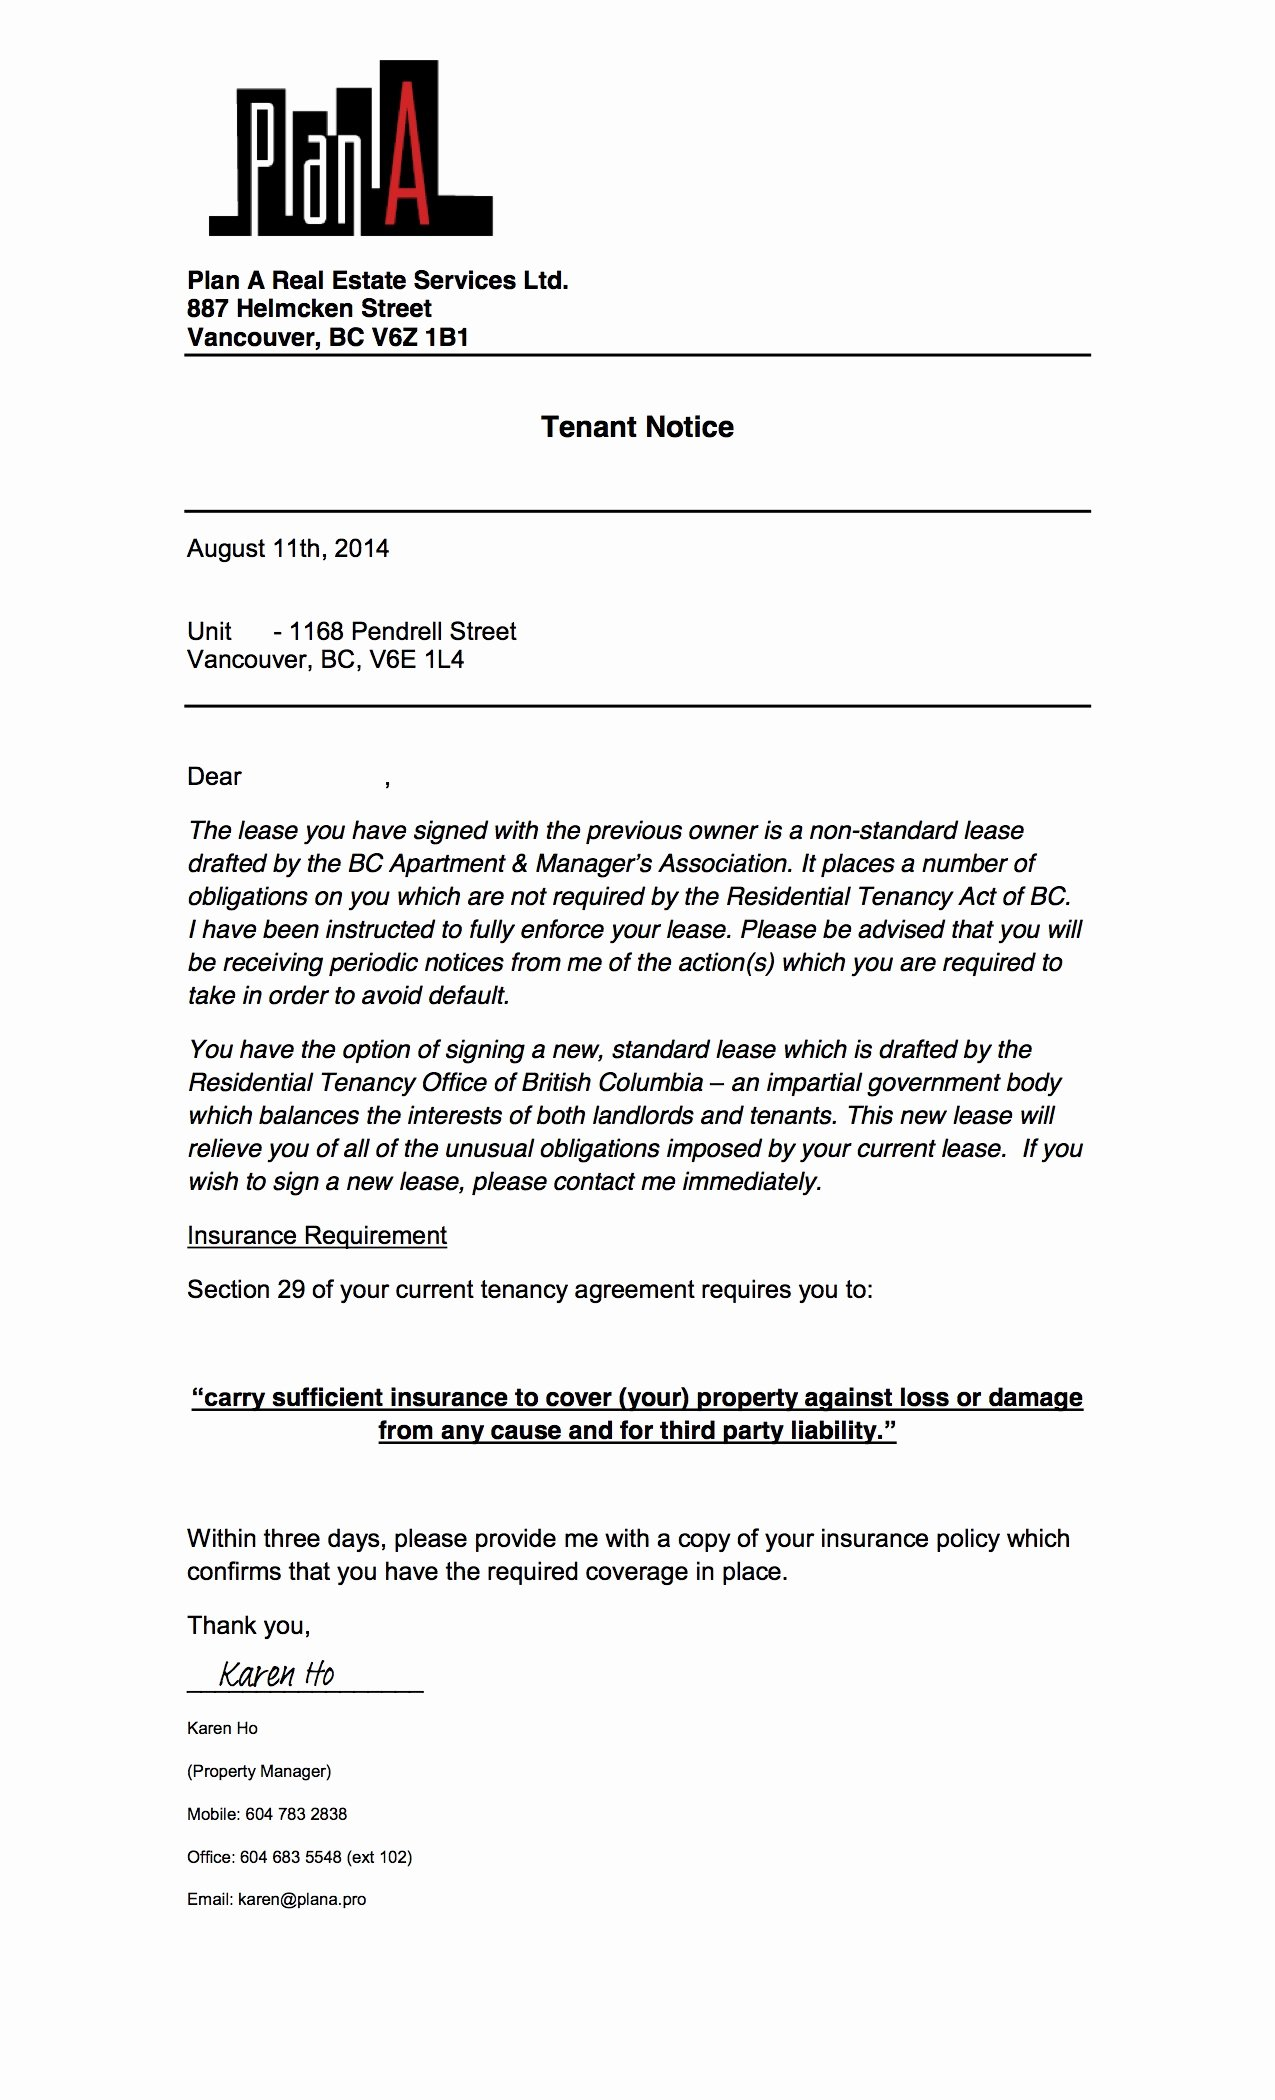 Sample Landlord Letters to Tenants Best Of Greedeviction 1168pendrell